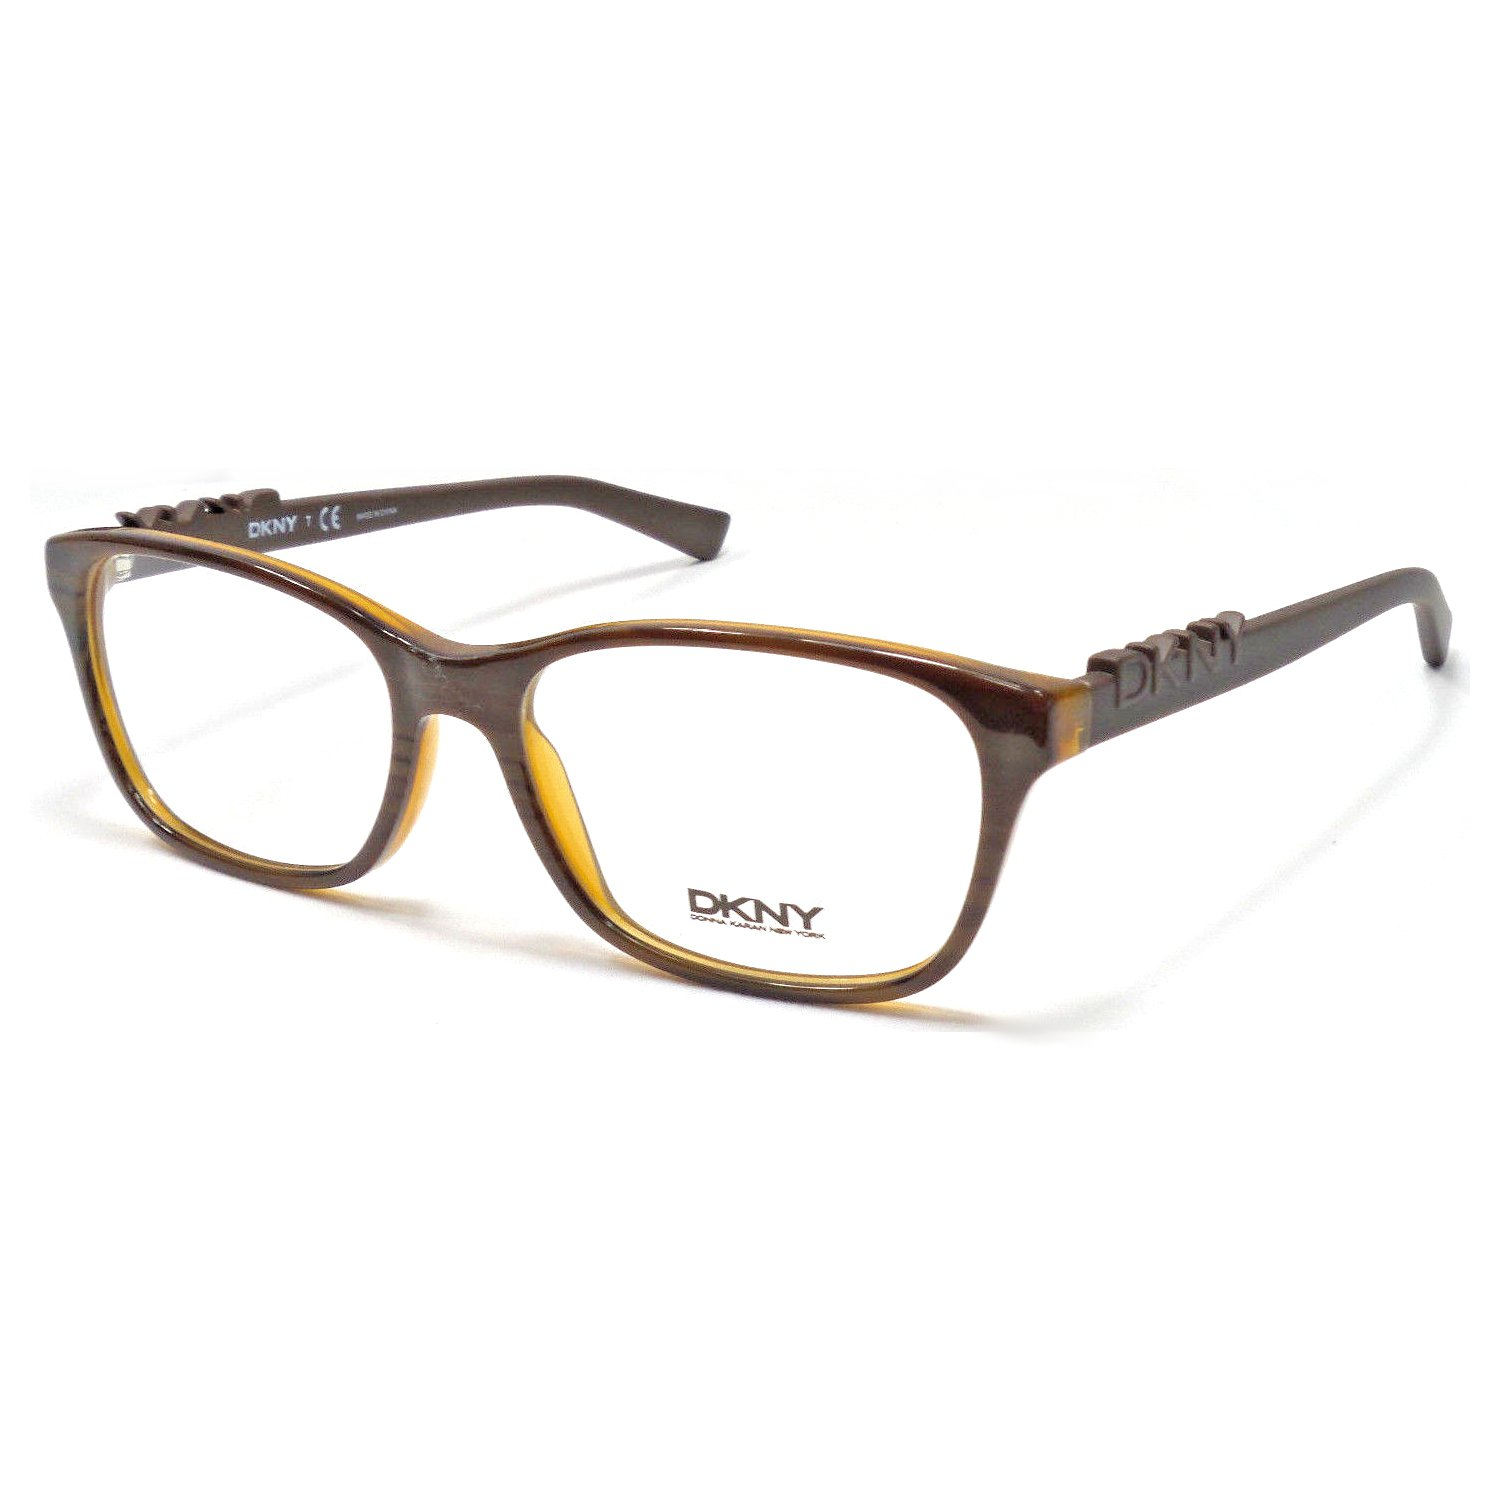 Donna Karan DKNY Women Brown Optical Eyeglasses Frame DY4663 3667 53mm